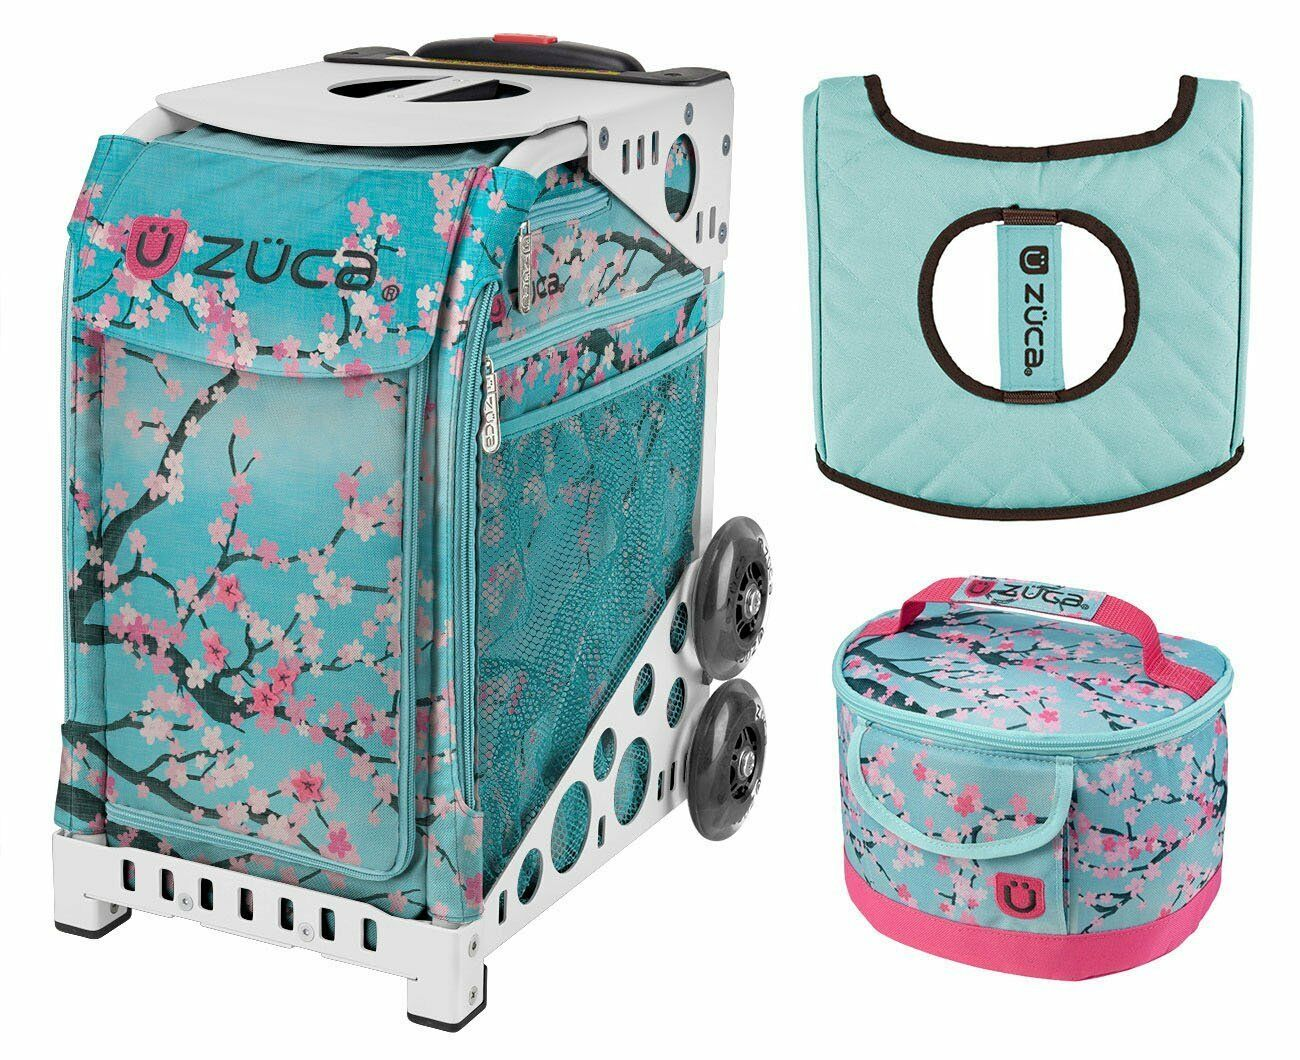 Zuca Sport Bag - Hanami with GIFT Lunchbox and Seat Cover (White Frame)